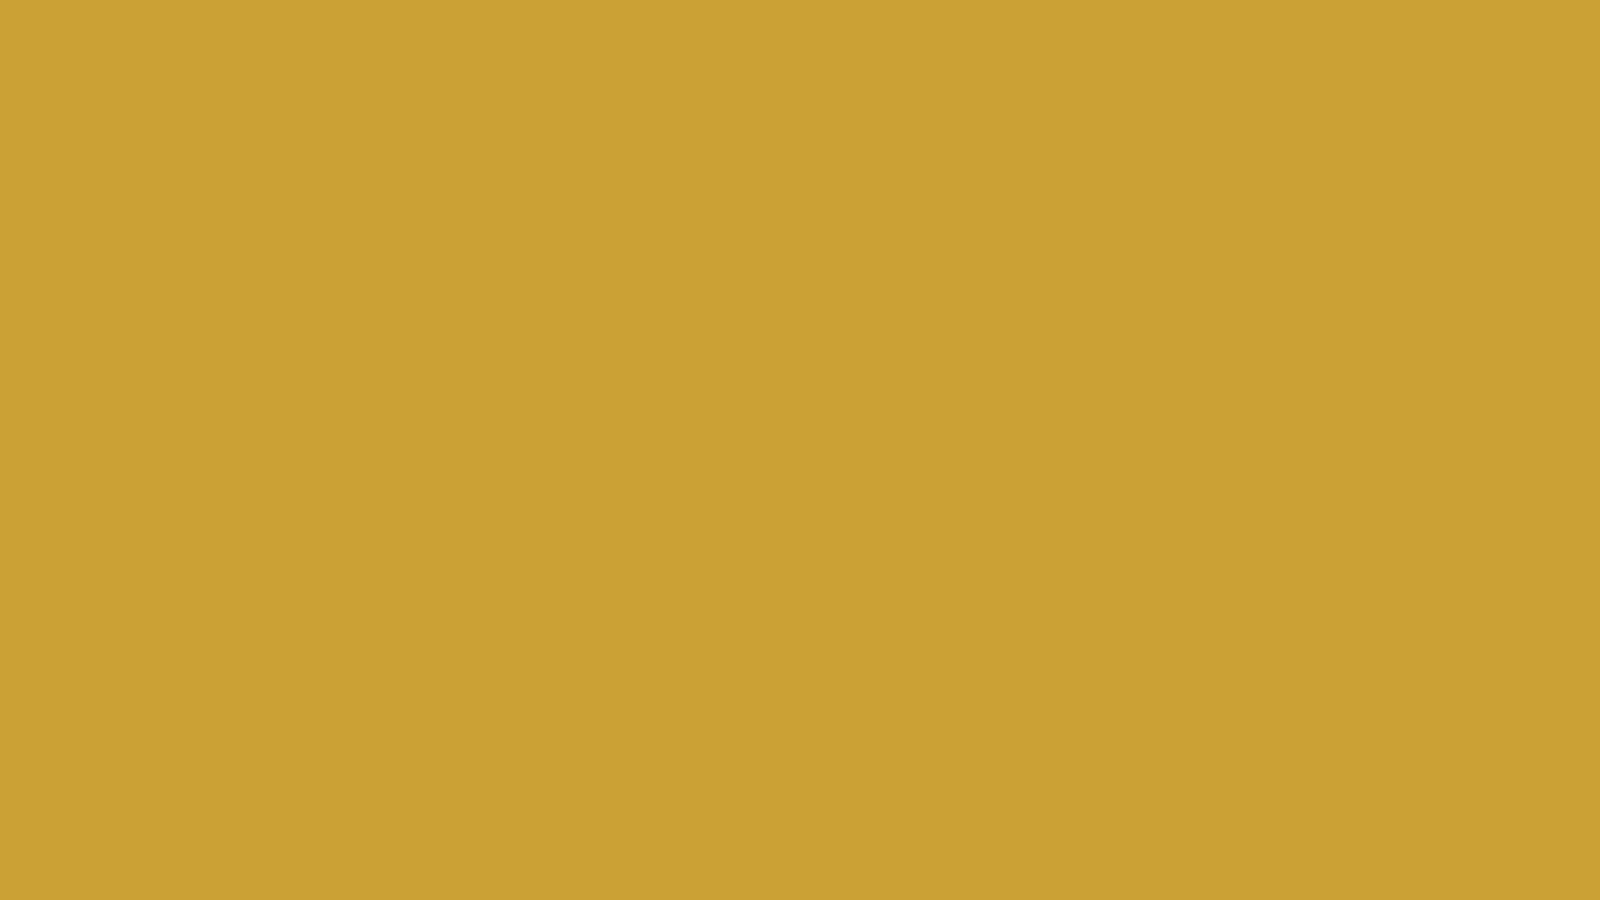 1600x900 Satin Sheen Gold Solid Color Background